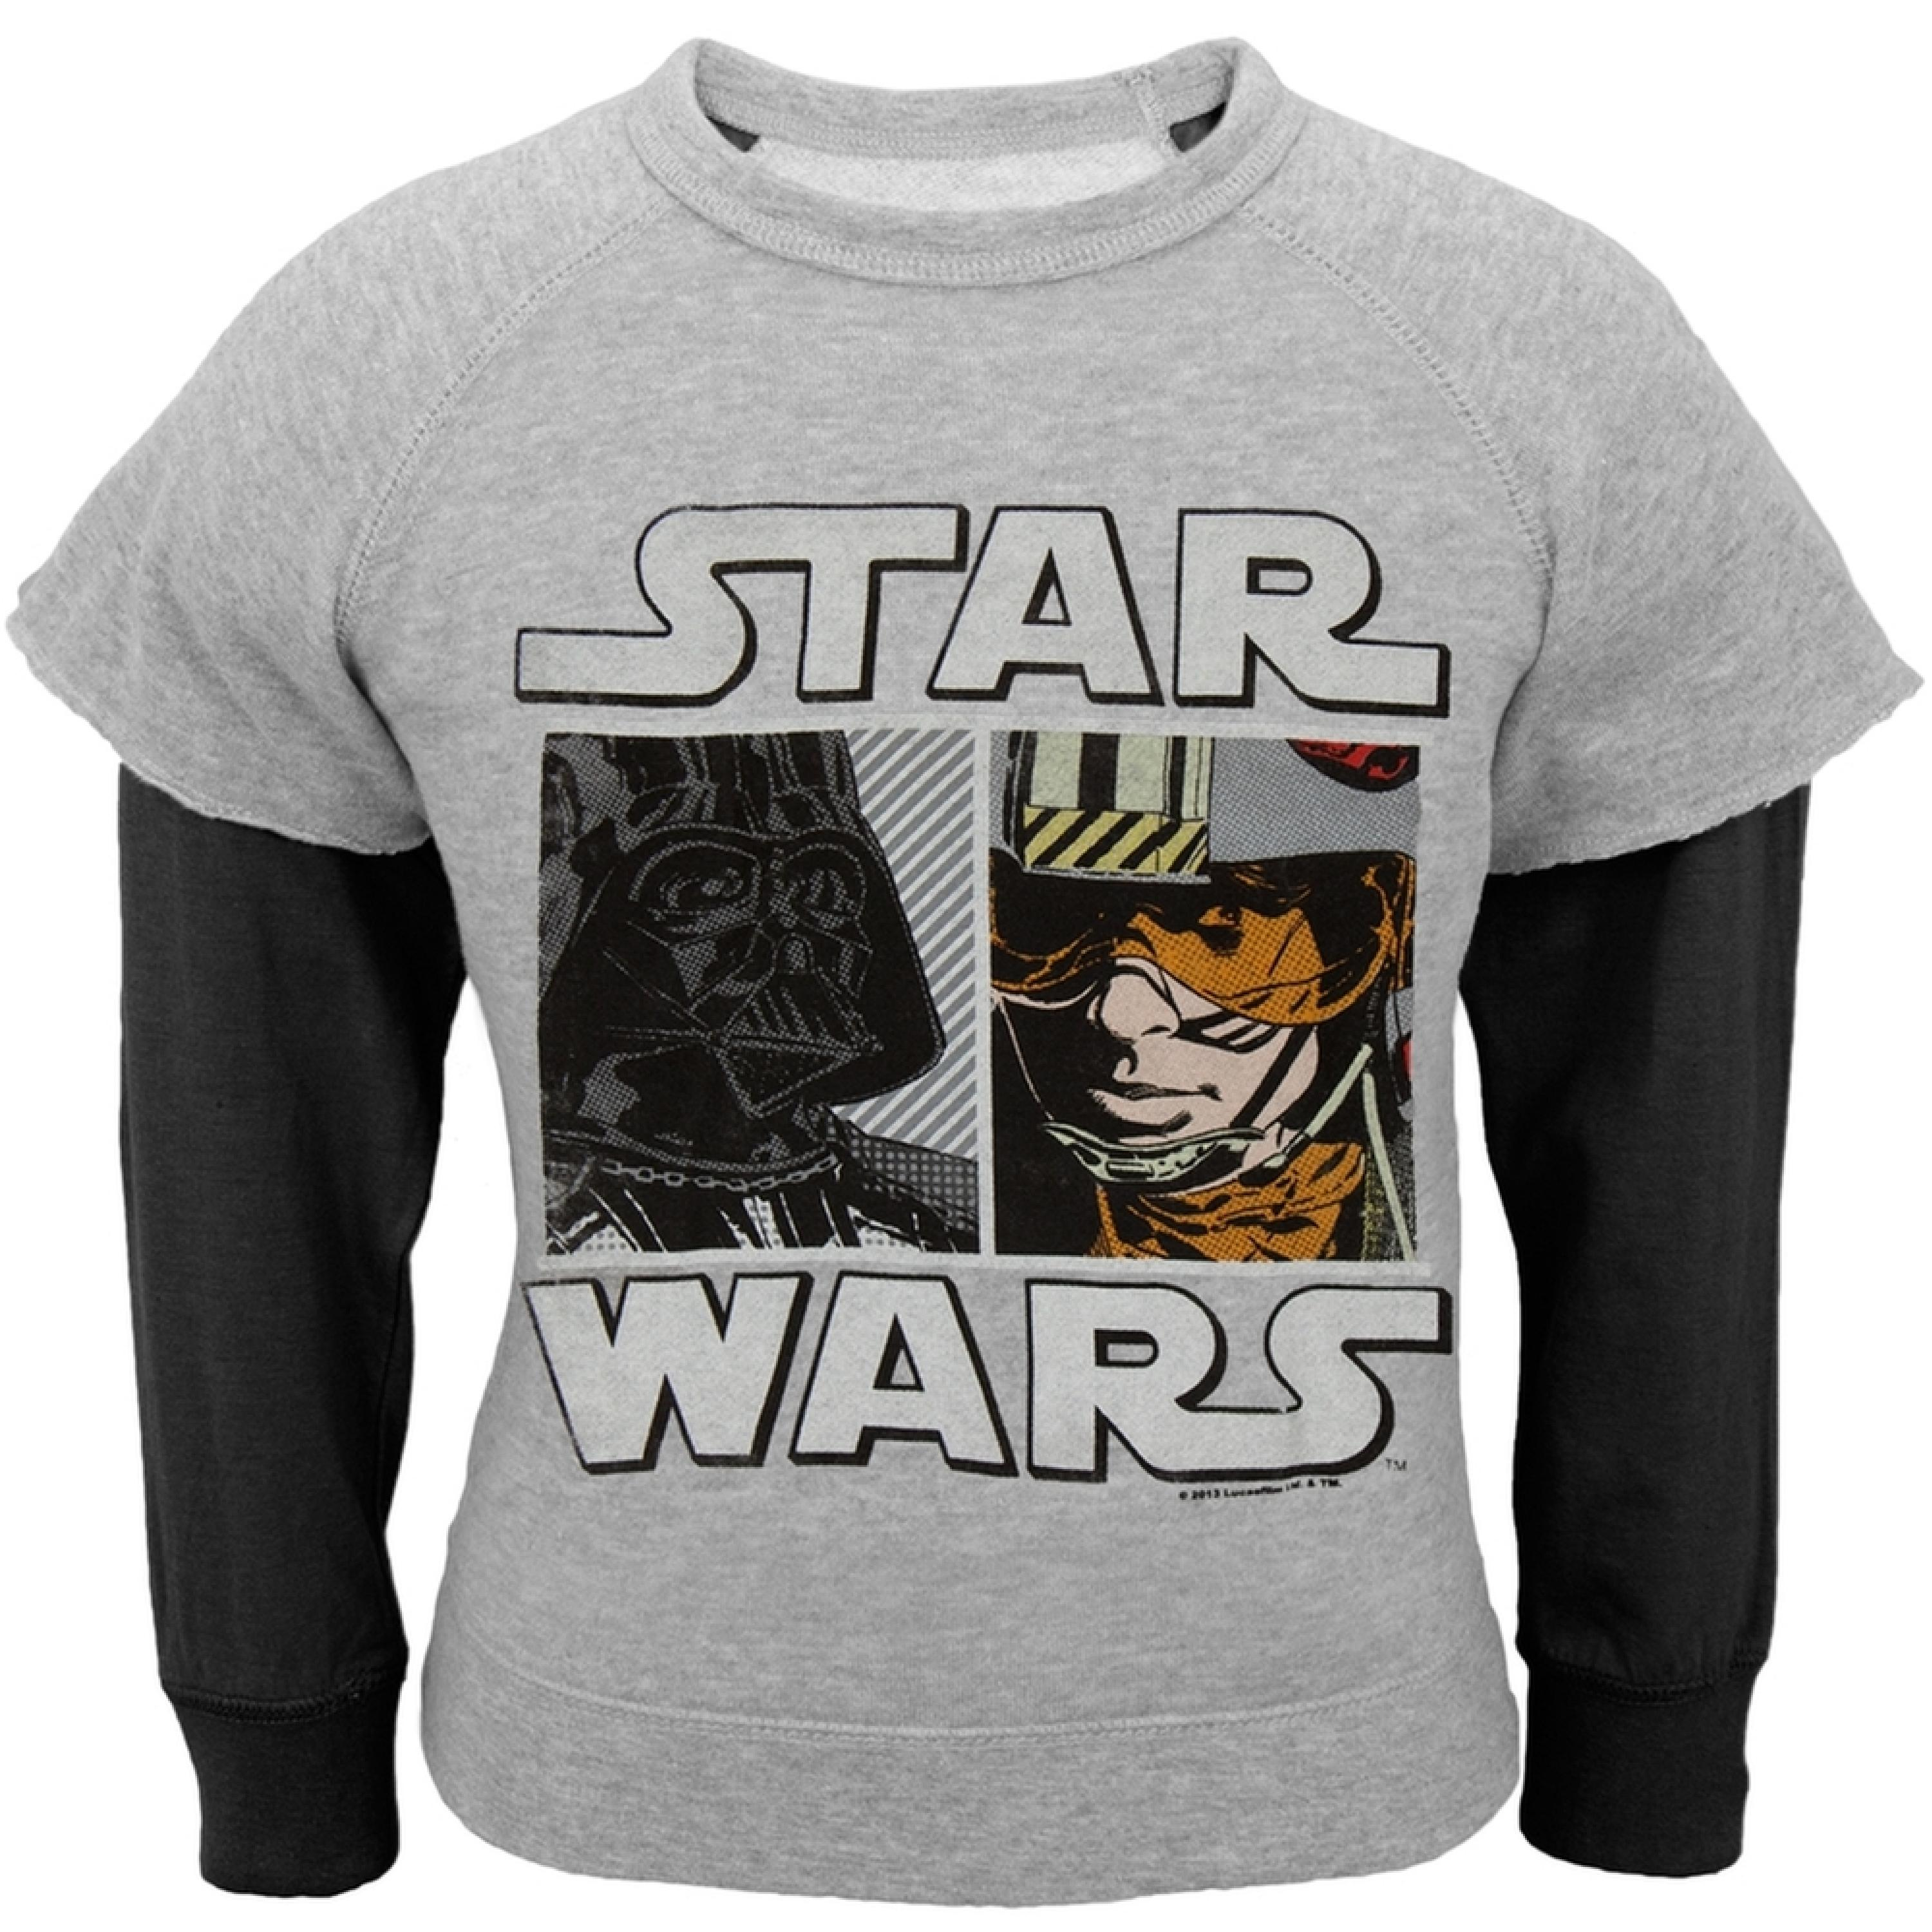 Star Wars - Faces University Juvy Reversible Crewneck Sweatshirt